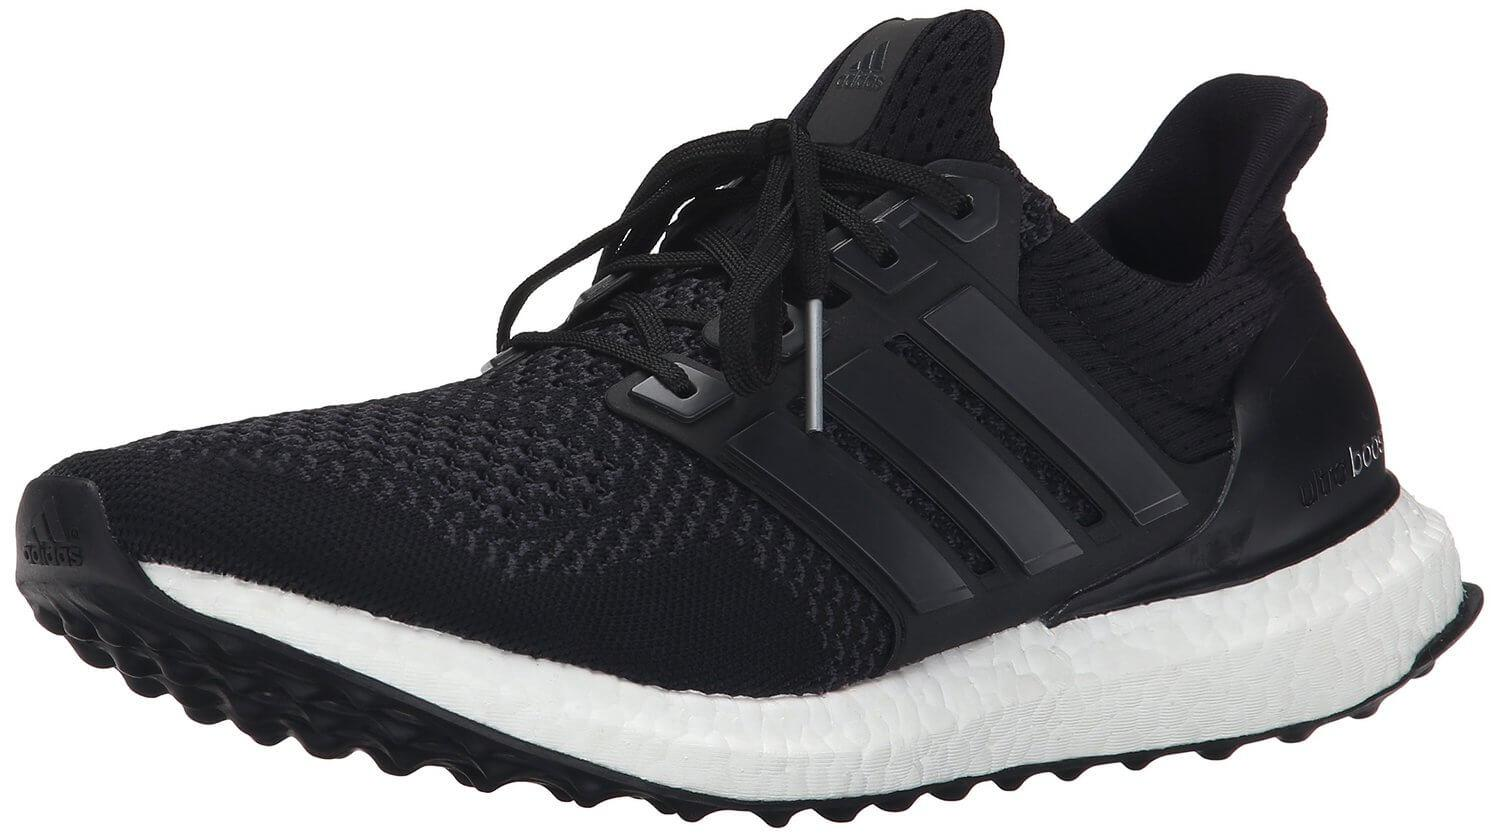 Adidas Ultra Boost Reviewed - To Buy or Not in Apr 2019  352867152